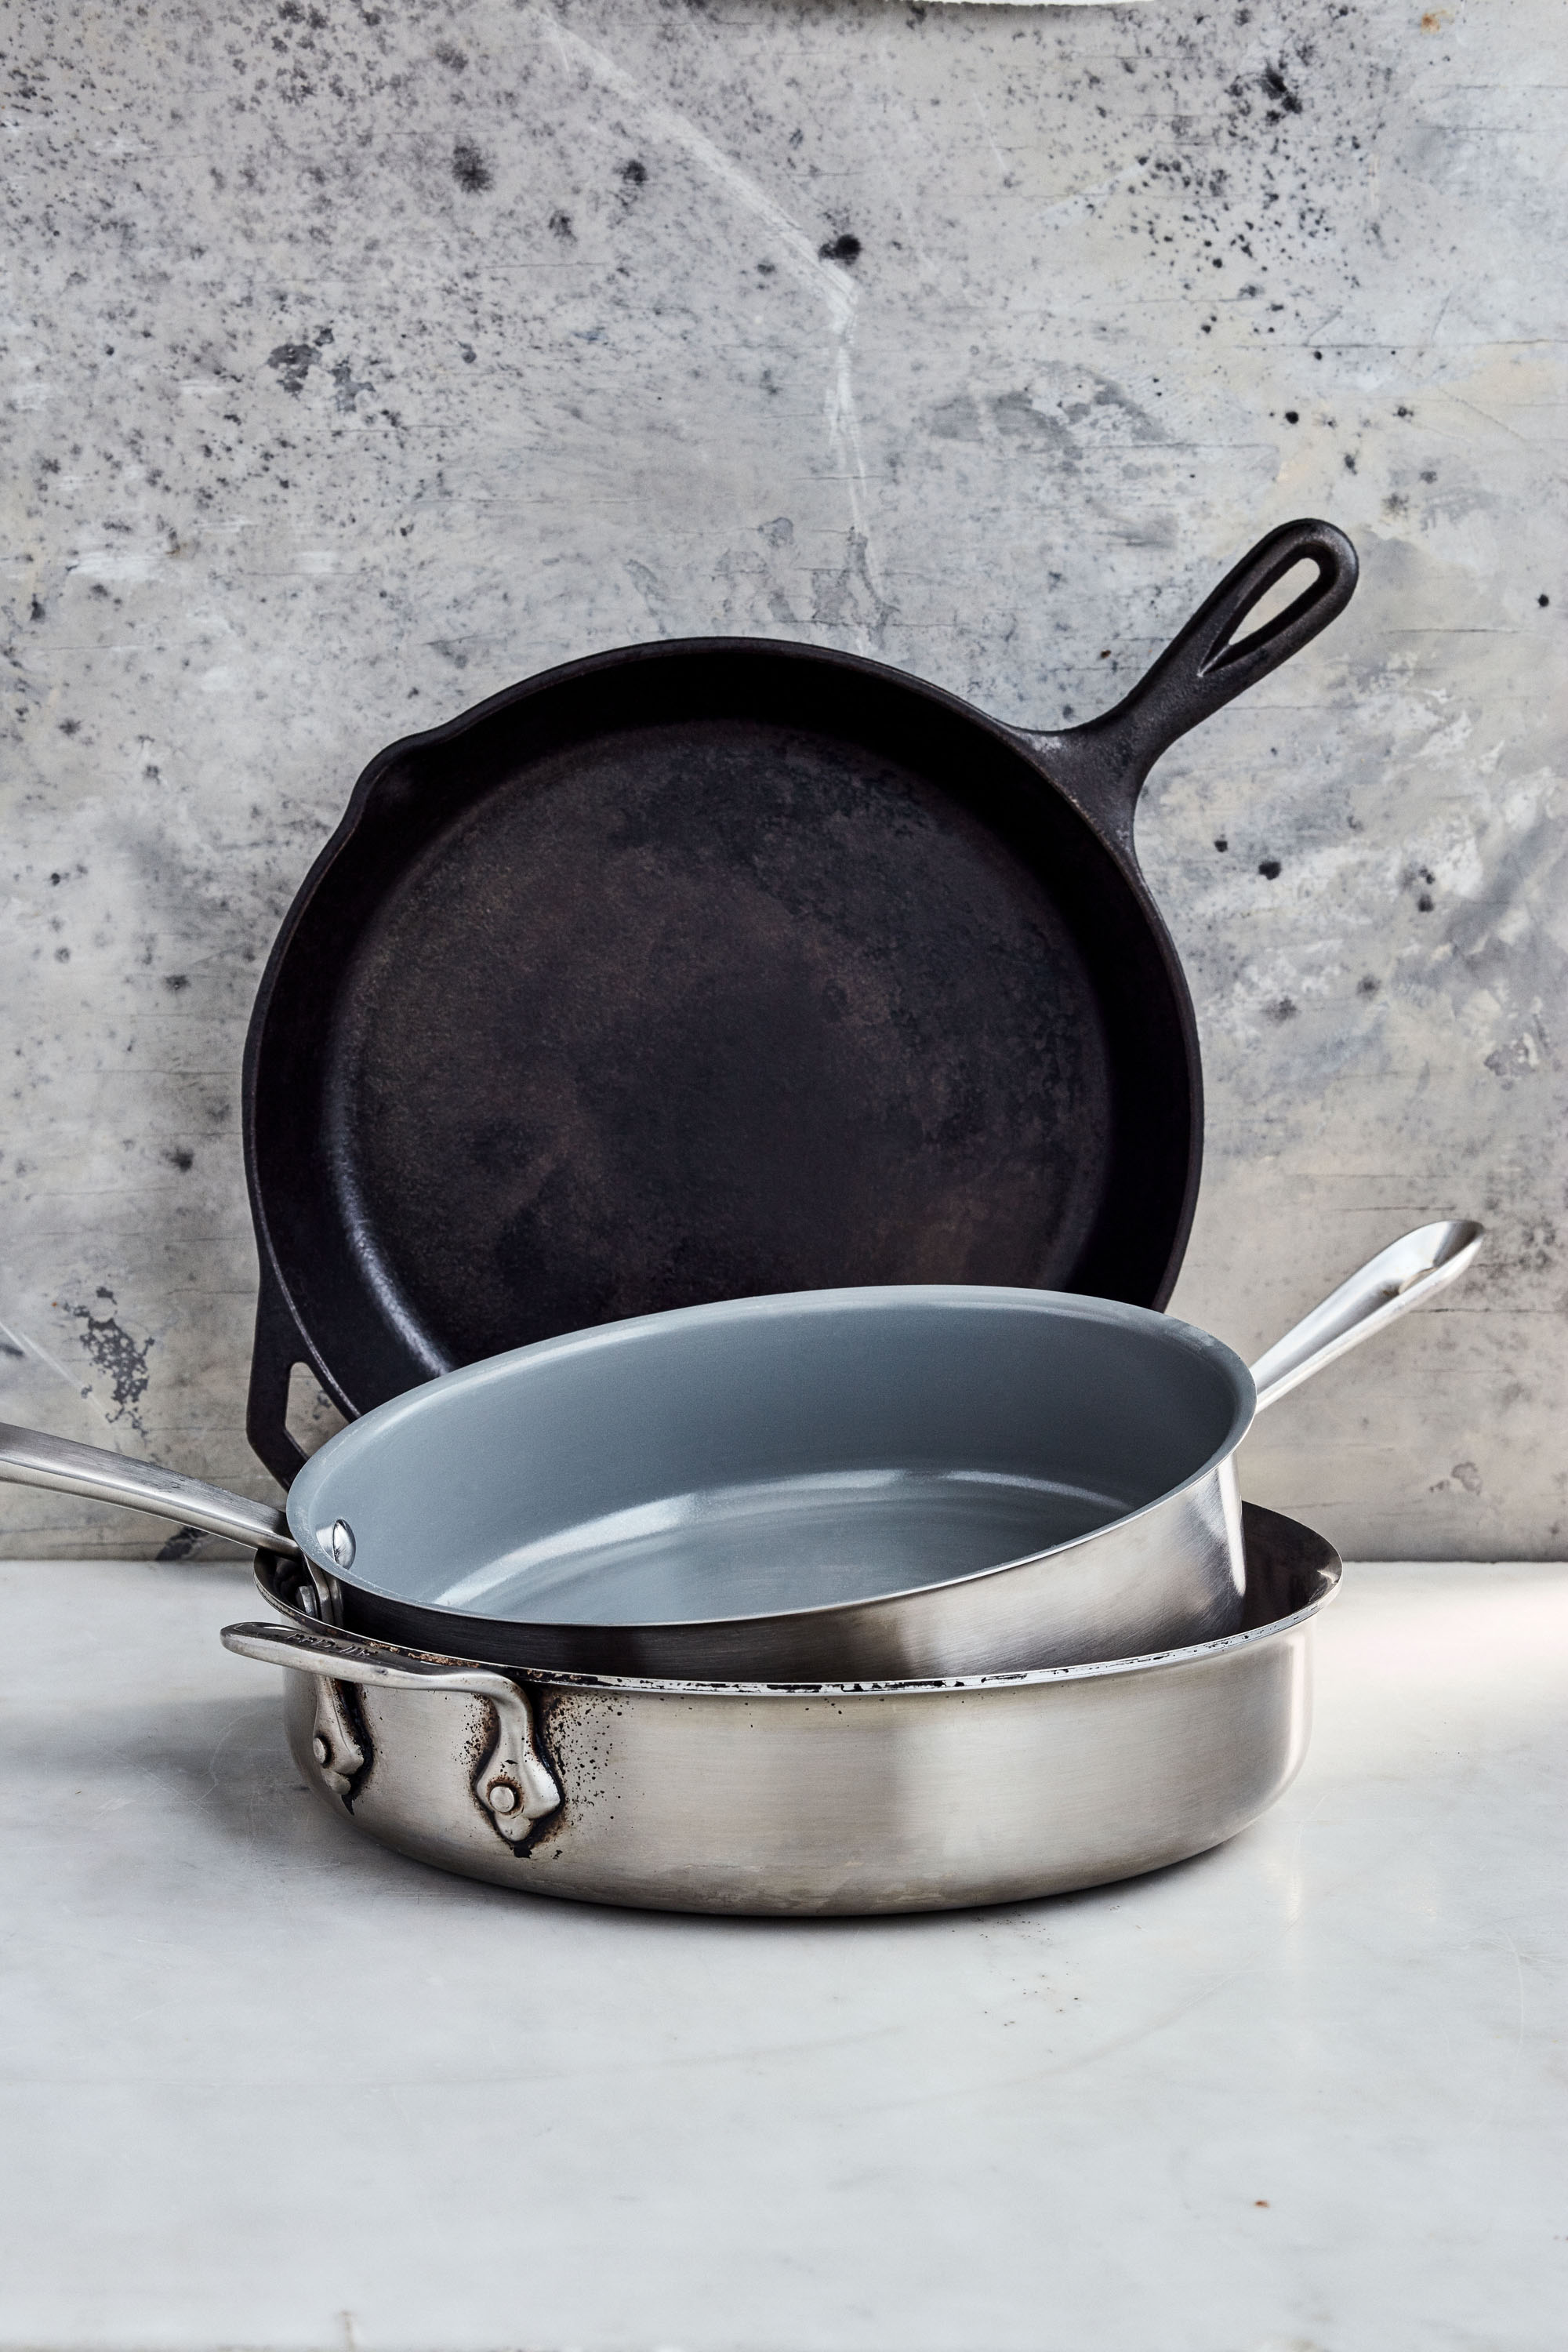 This Is Why the Test Kitchen Team Uses Straight-Sided Skillets Every Day